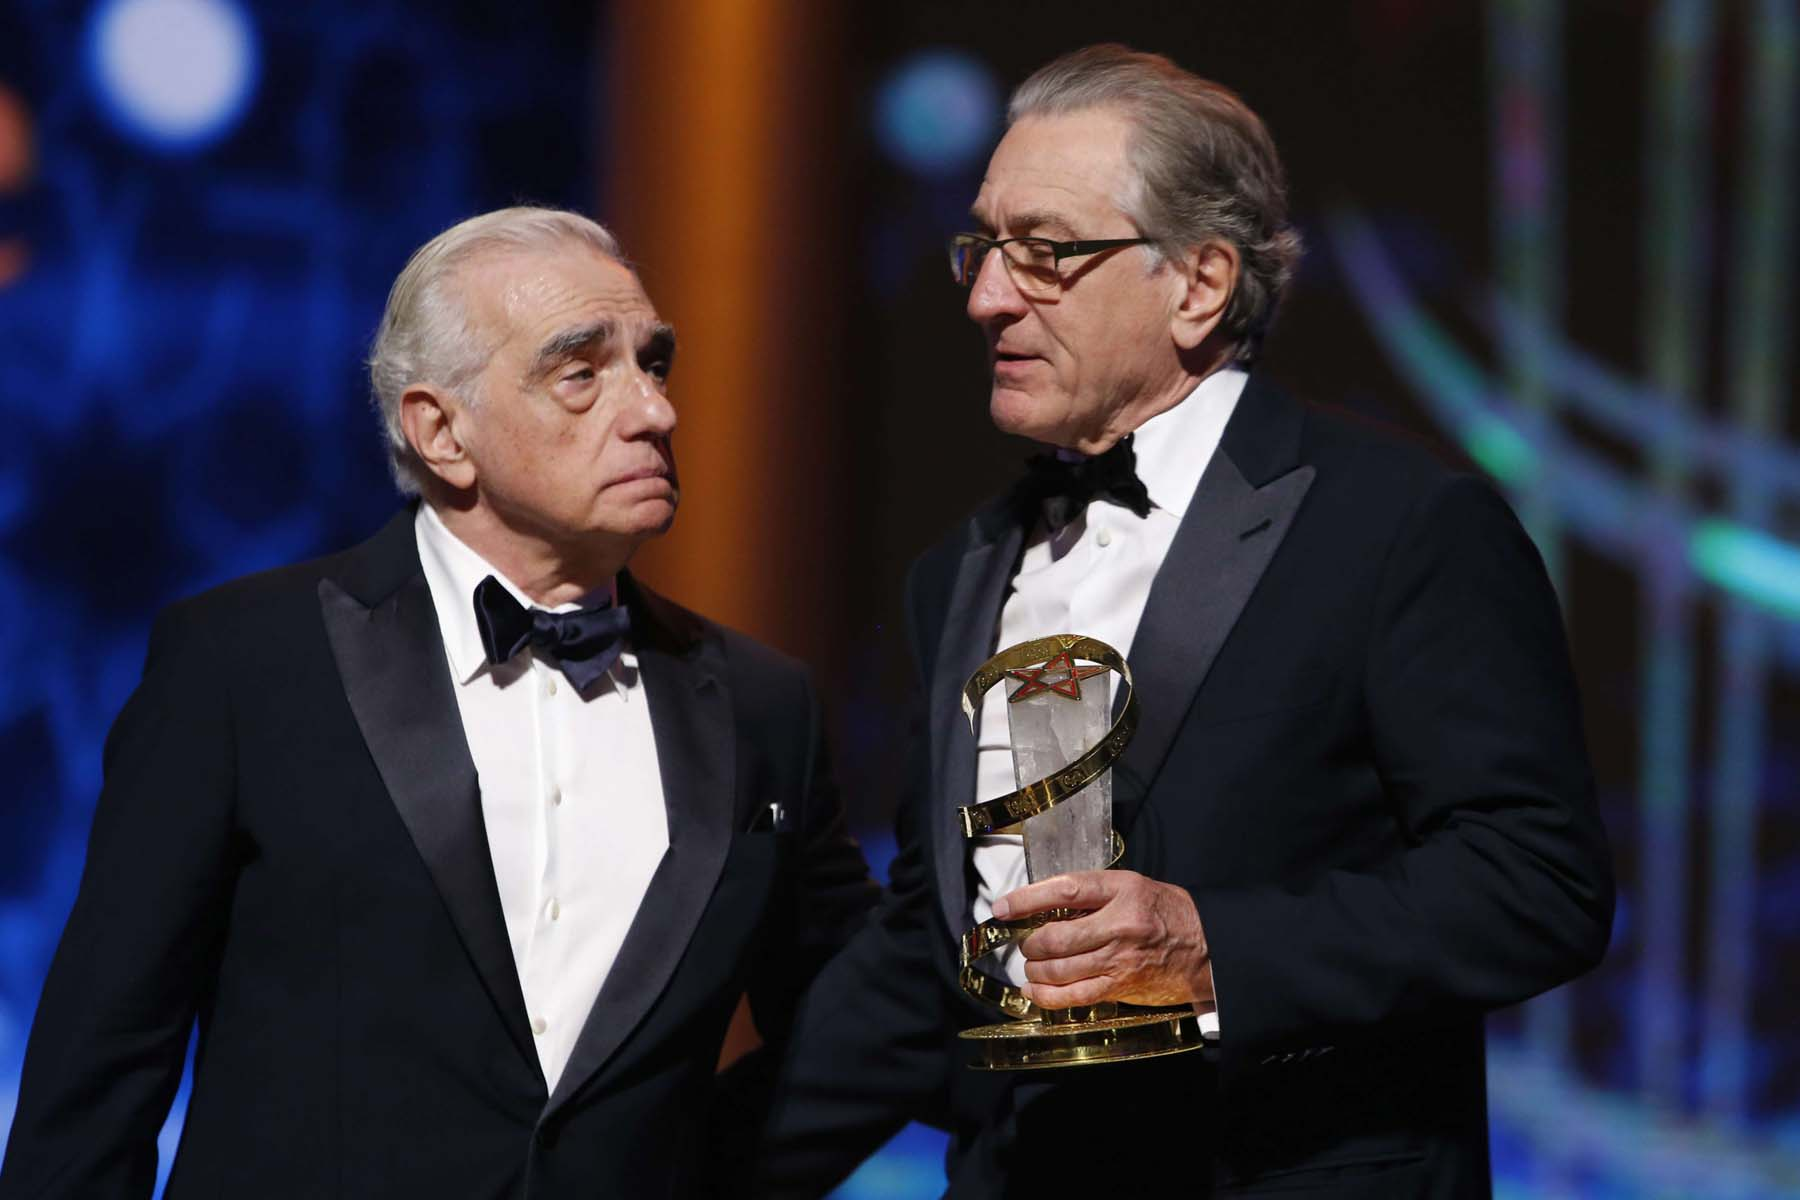 Actor Robert De Niro (R) poses after receiving a tribute award from US director Martin Scorsese during the 17th Marrakech International Film Festival, December 1. (AP)